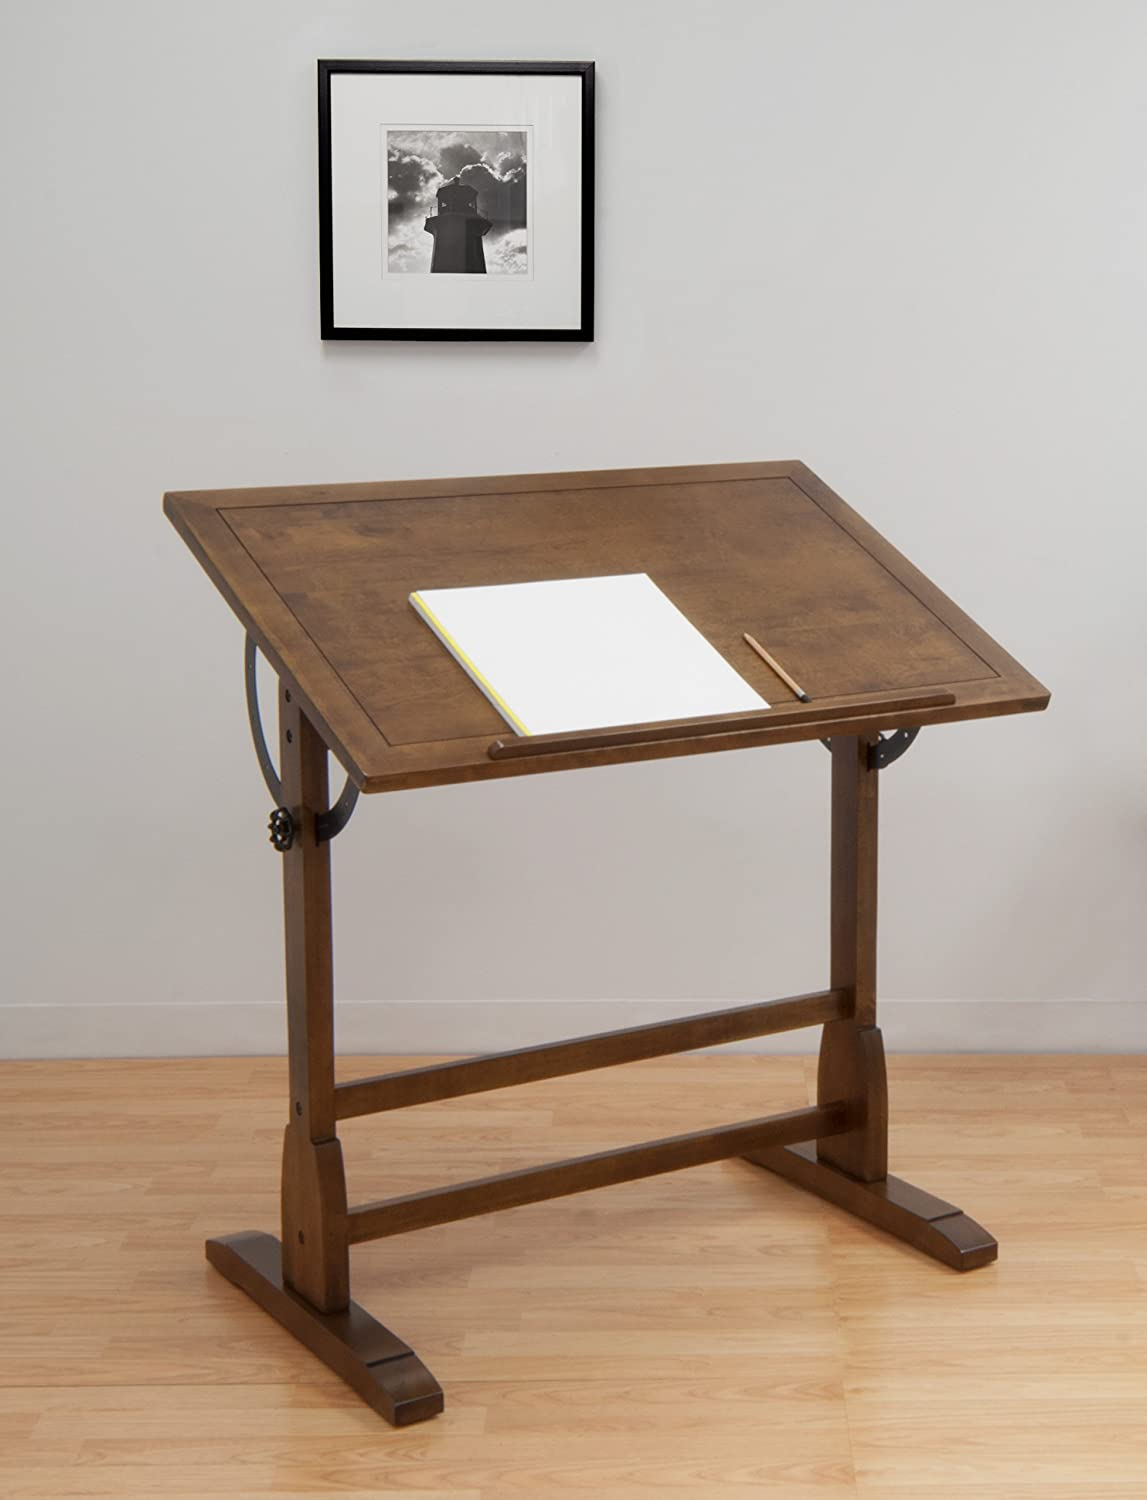 New vintage drafting table oak wood art crafts architects - Table studio ...